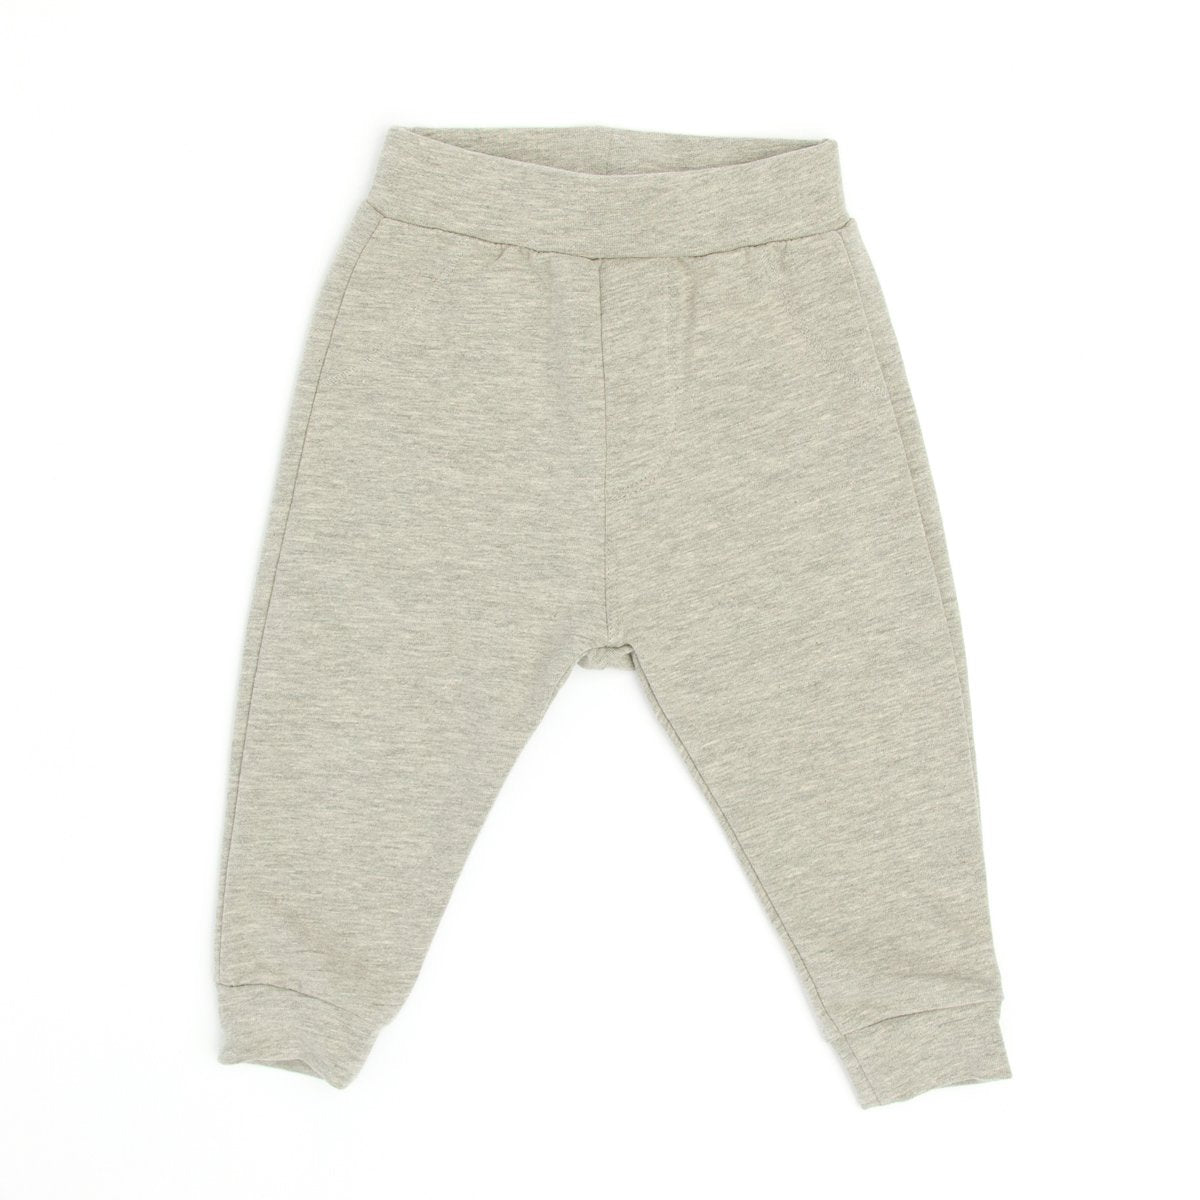 Heather Gray Banded Bottom Jogger